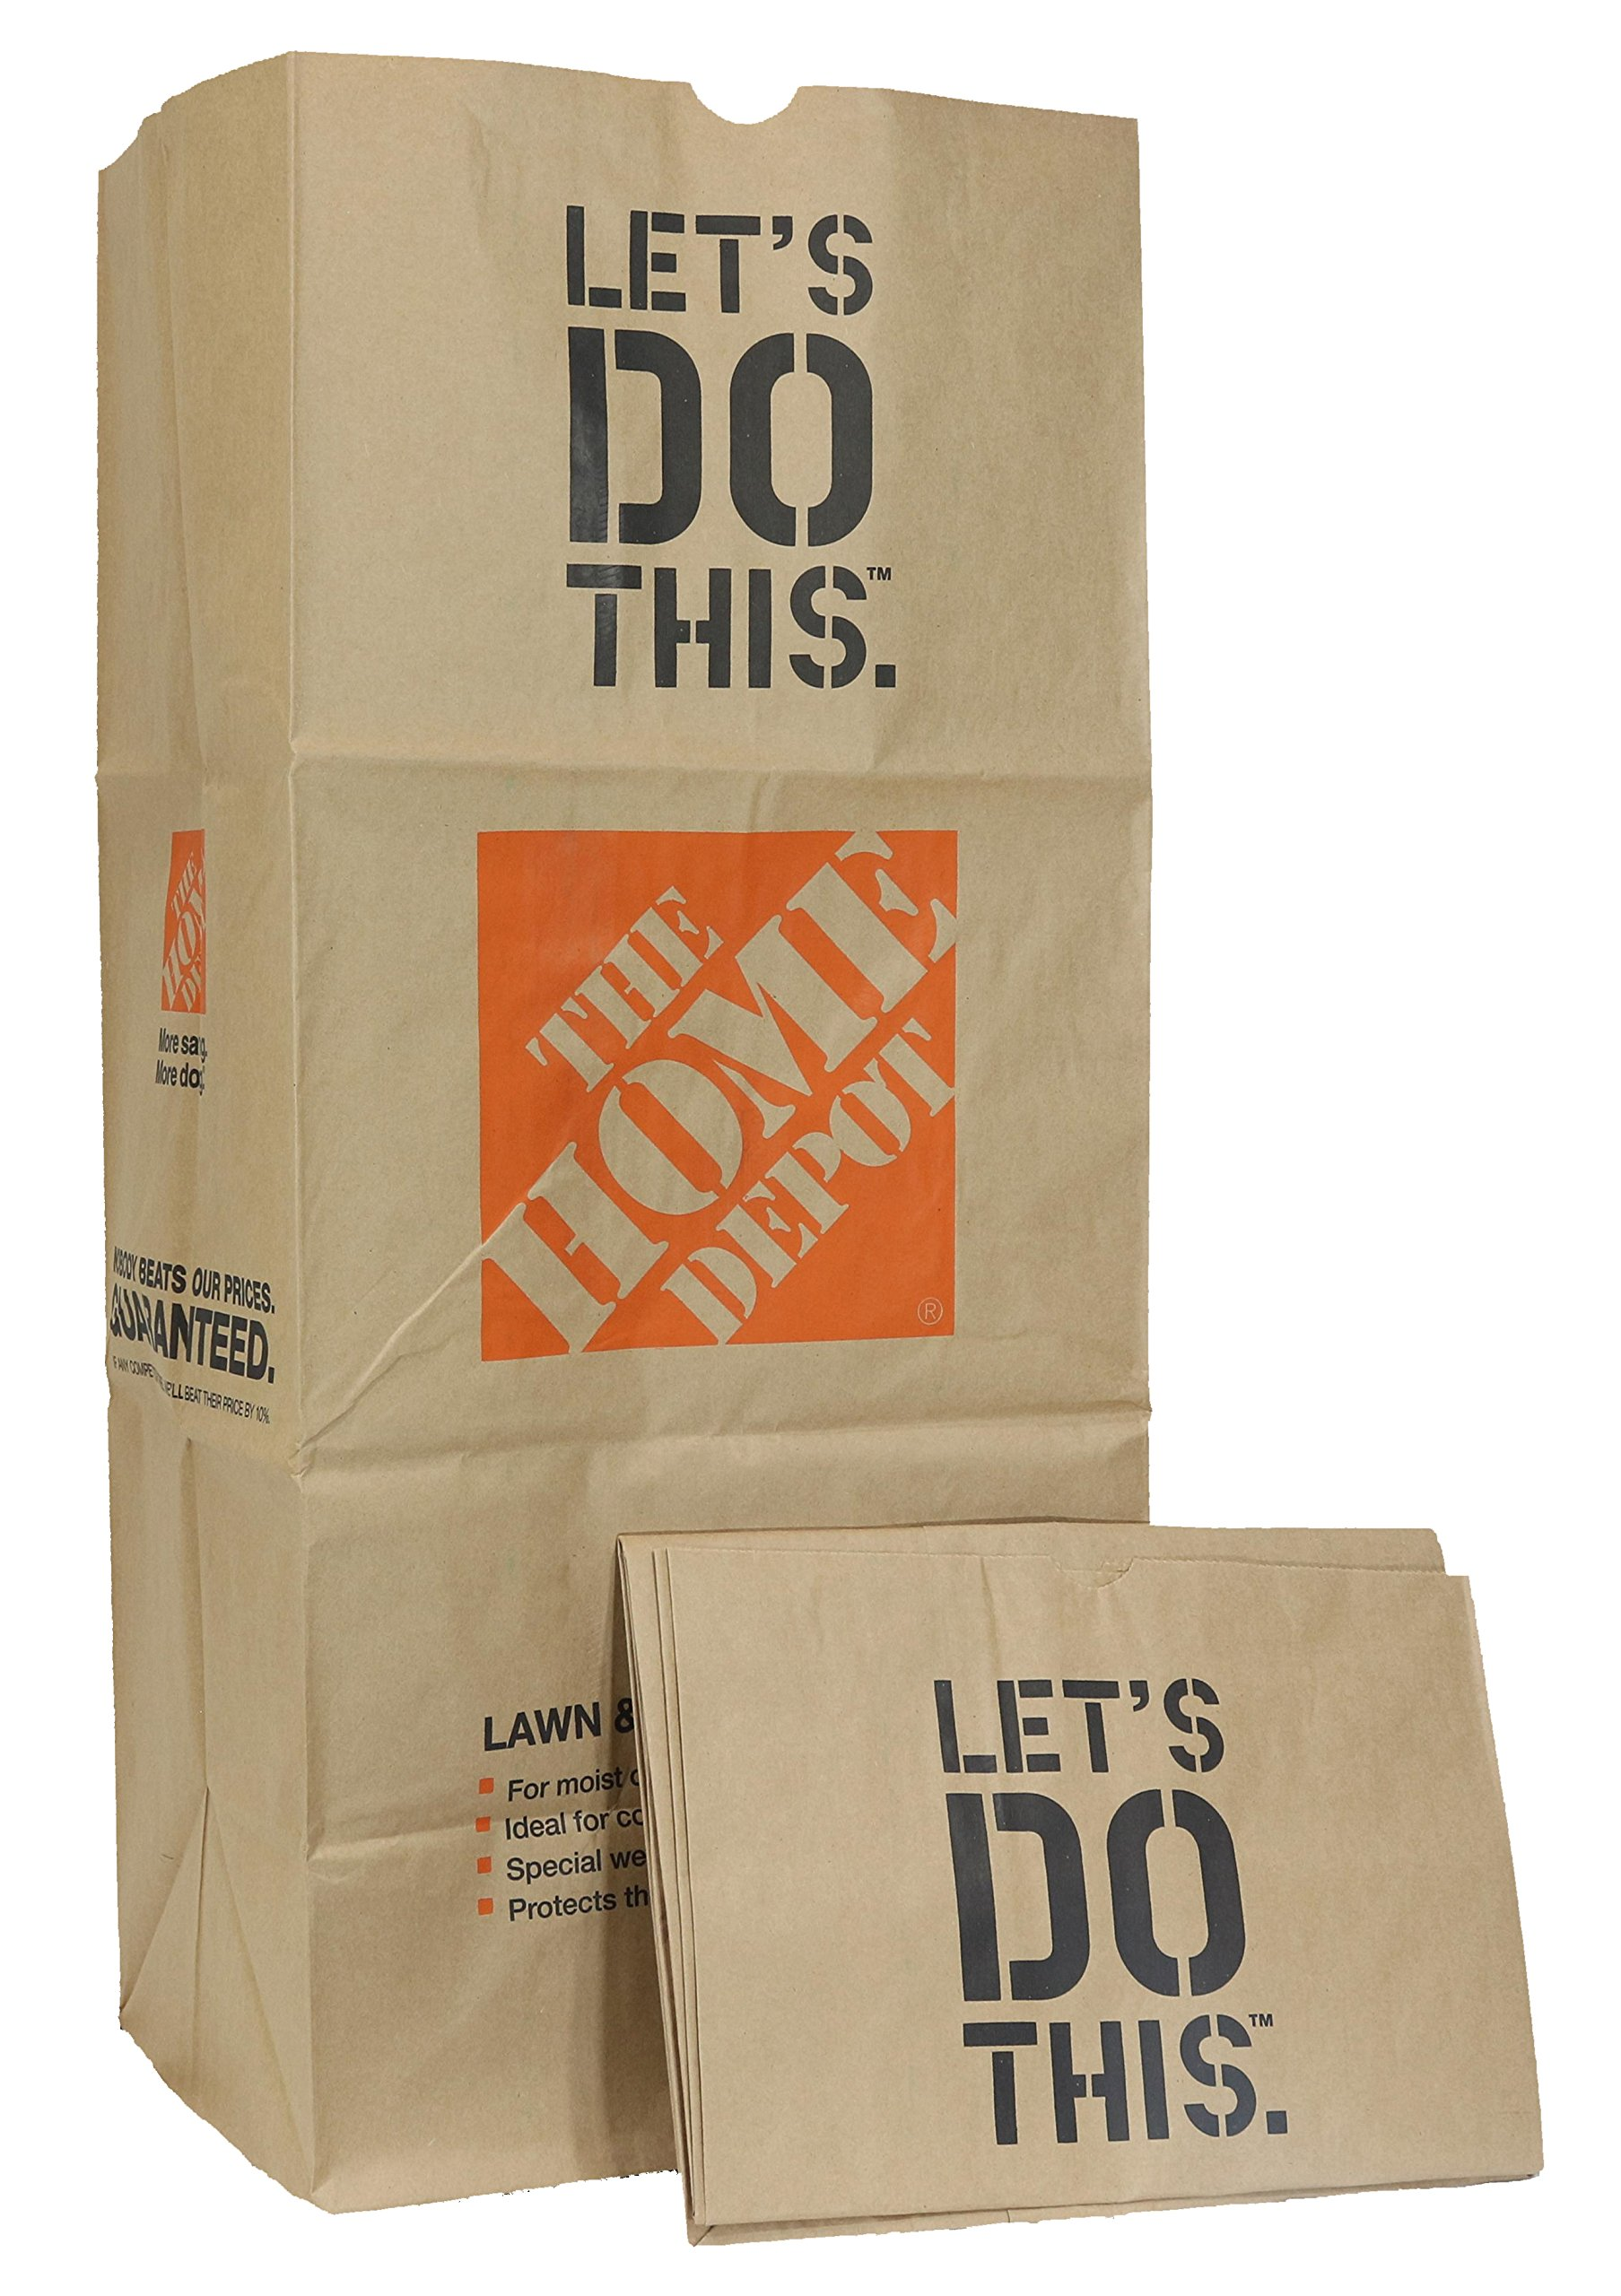 Home Depot Heavy Duty Brown Paper 30 Gallon Lawn and Refuse Bags for Home and Garden (15 Lawn Bags) product image